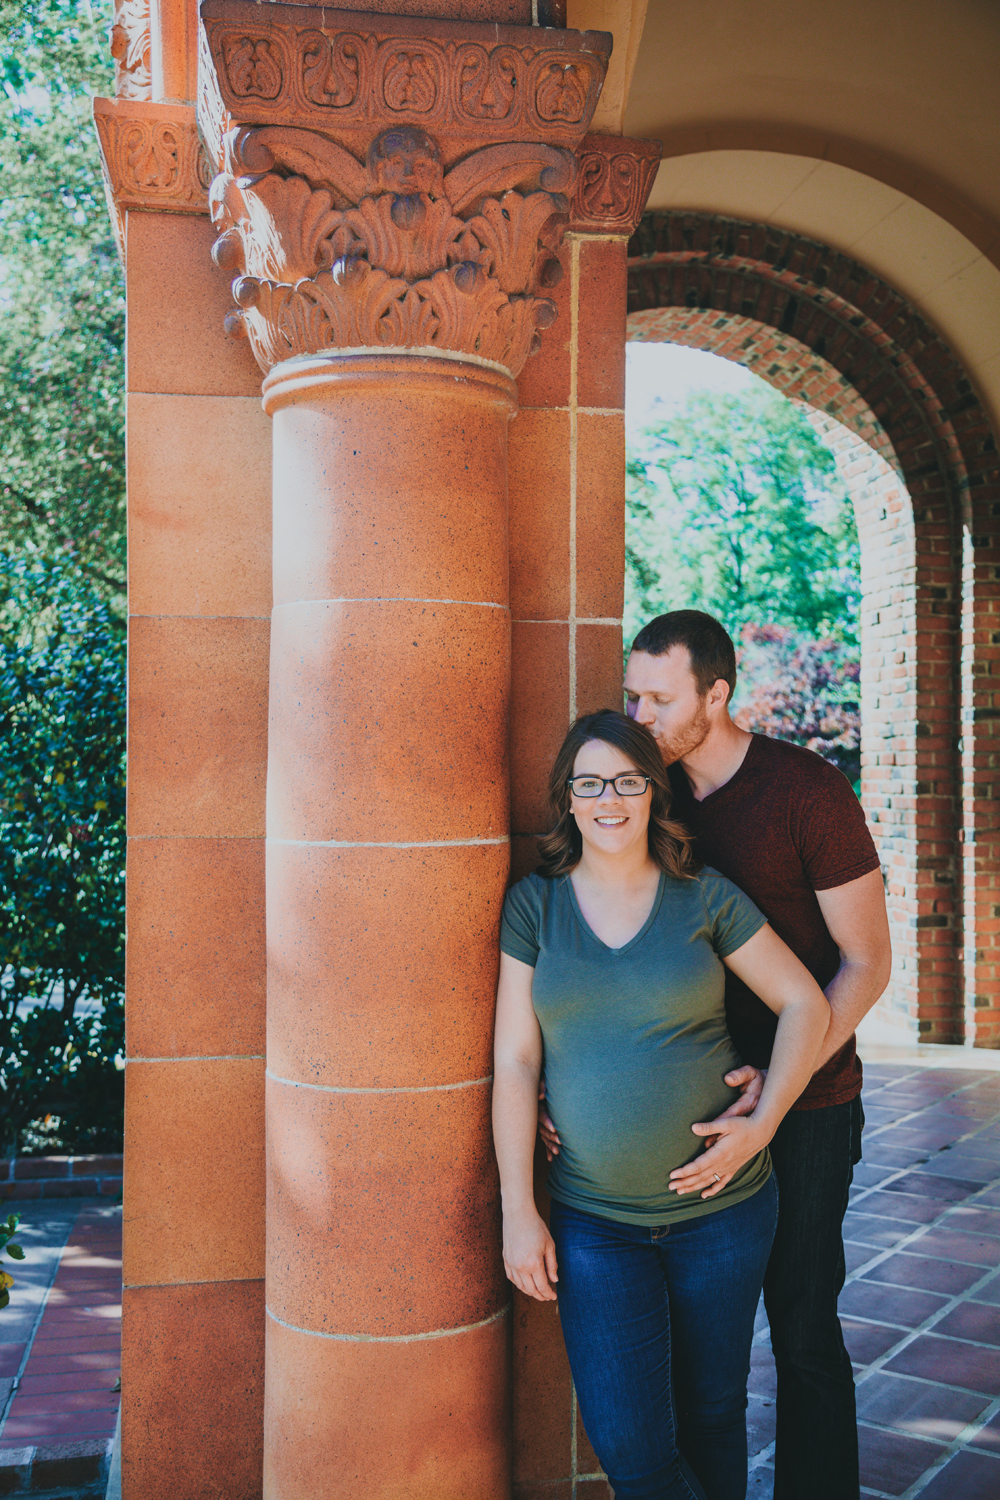 Downtown-Chico-and-Upper-Bidwell-Park-Maternity-photos24.jpg